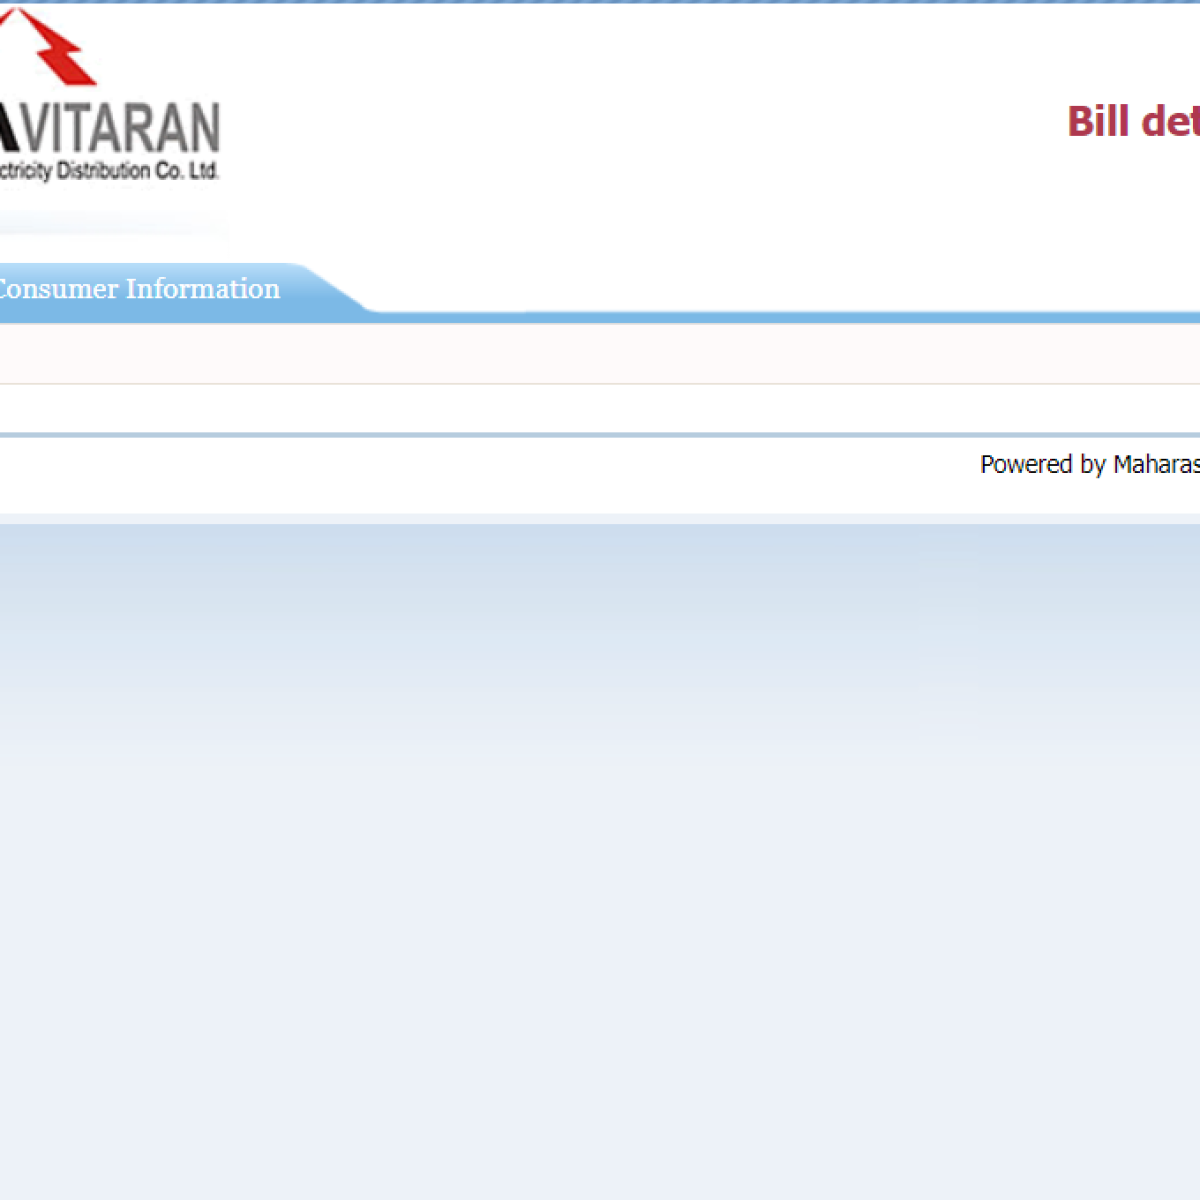 Got a crazy high electricity bill amid lockdown? Login to MSEDCL's new website to verify your bill